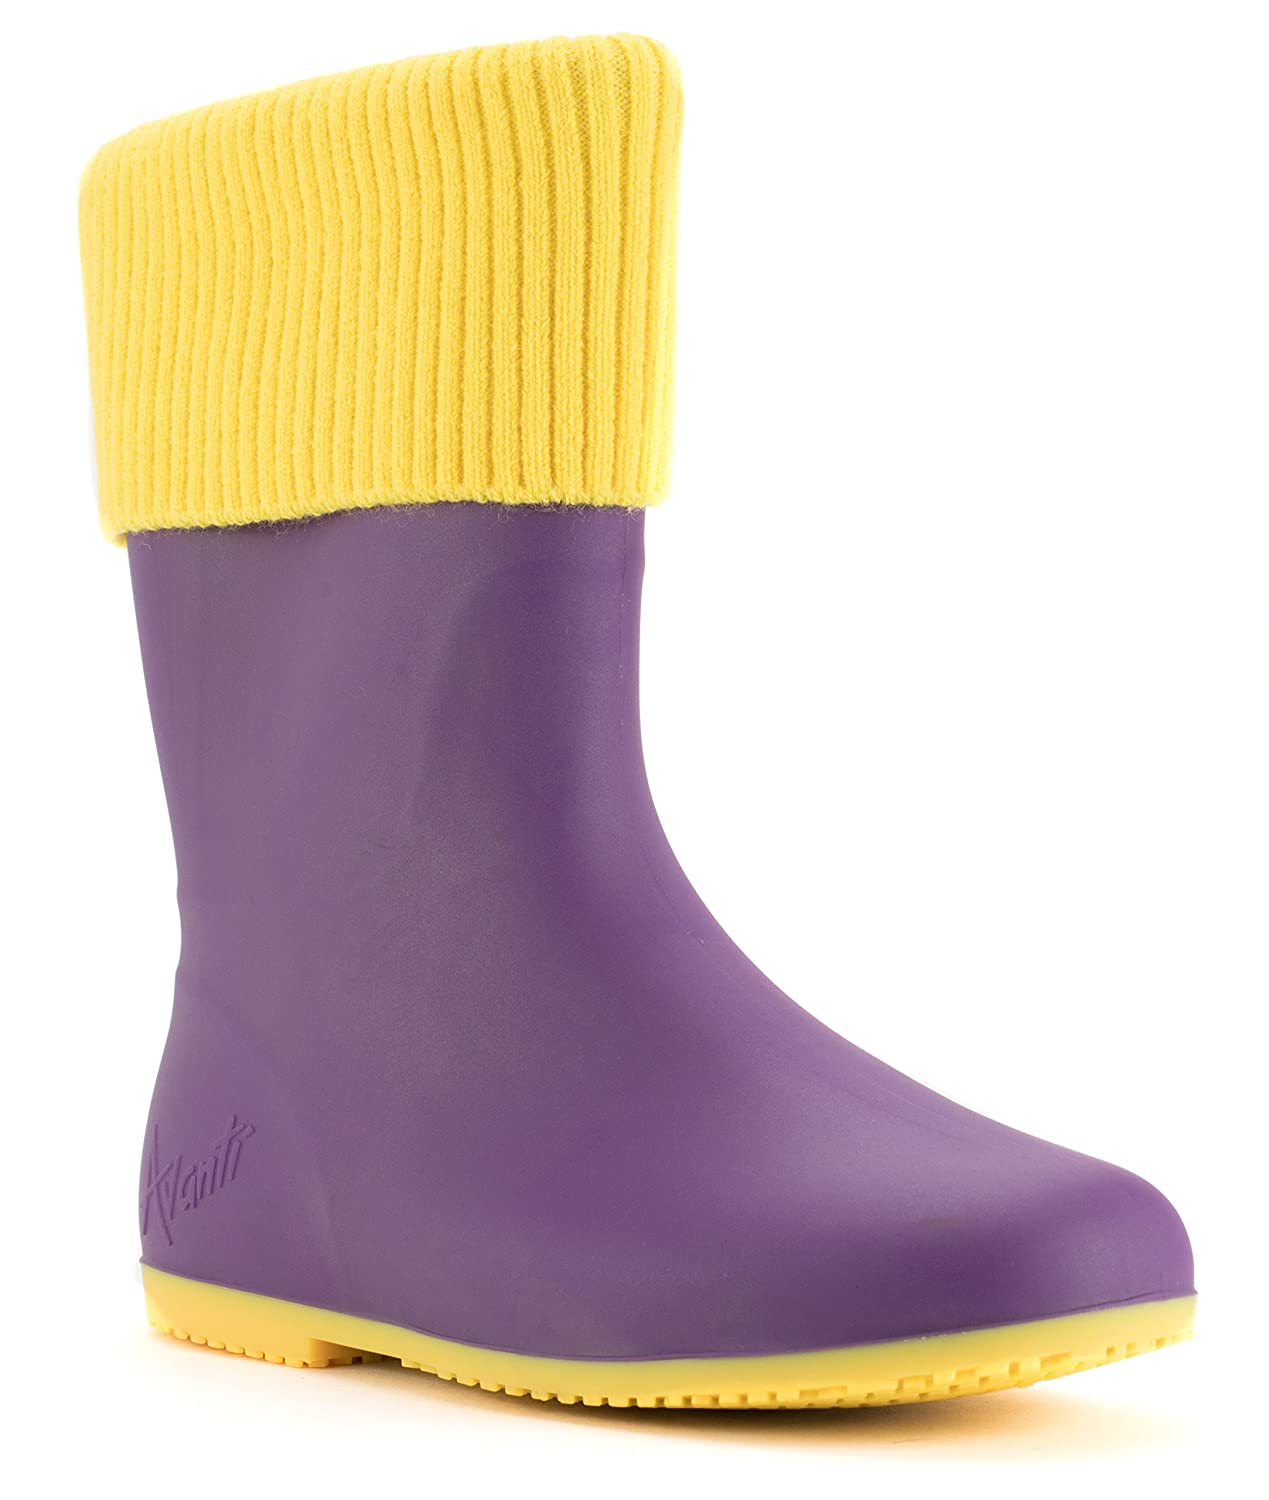 Avanti Storm Rain Boot Waterproof With Removable Knitted Cuff Monogram-Able Foldable B078SZ1C1G 8 B(M) US|Purple and Yellow